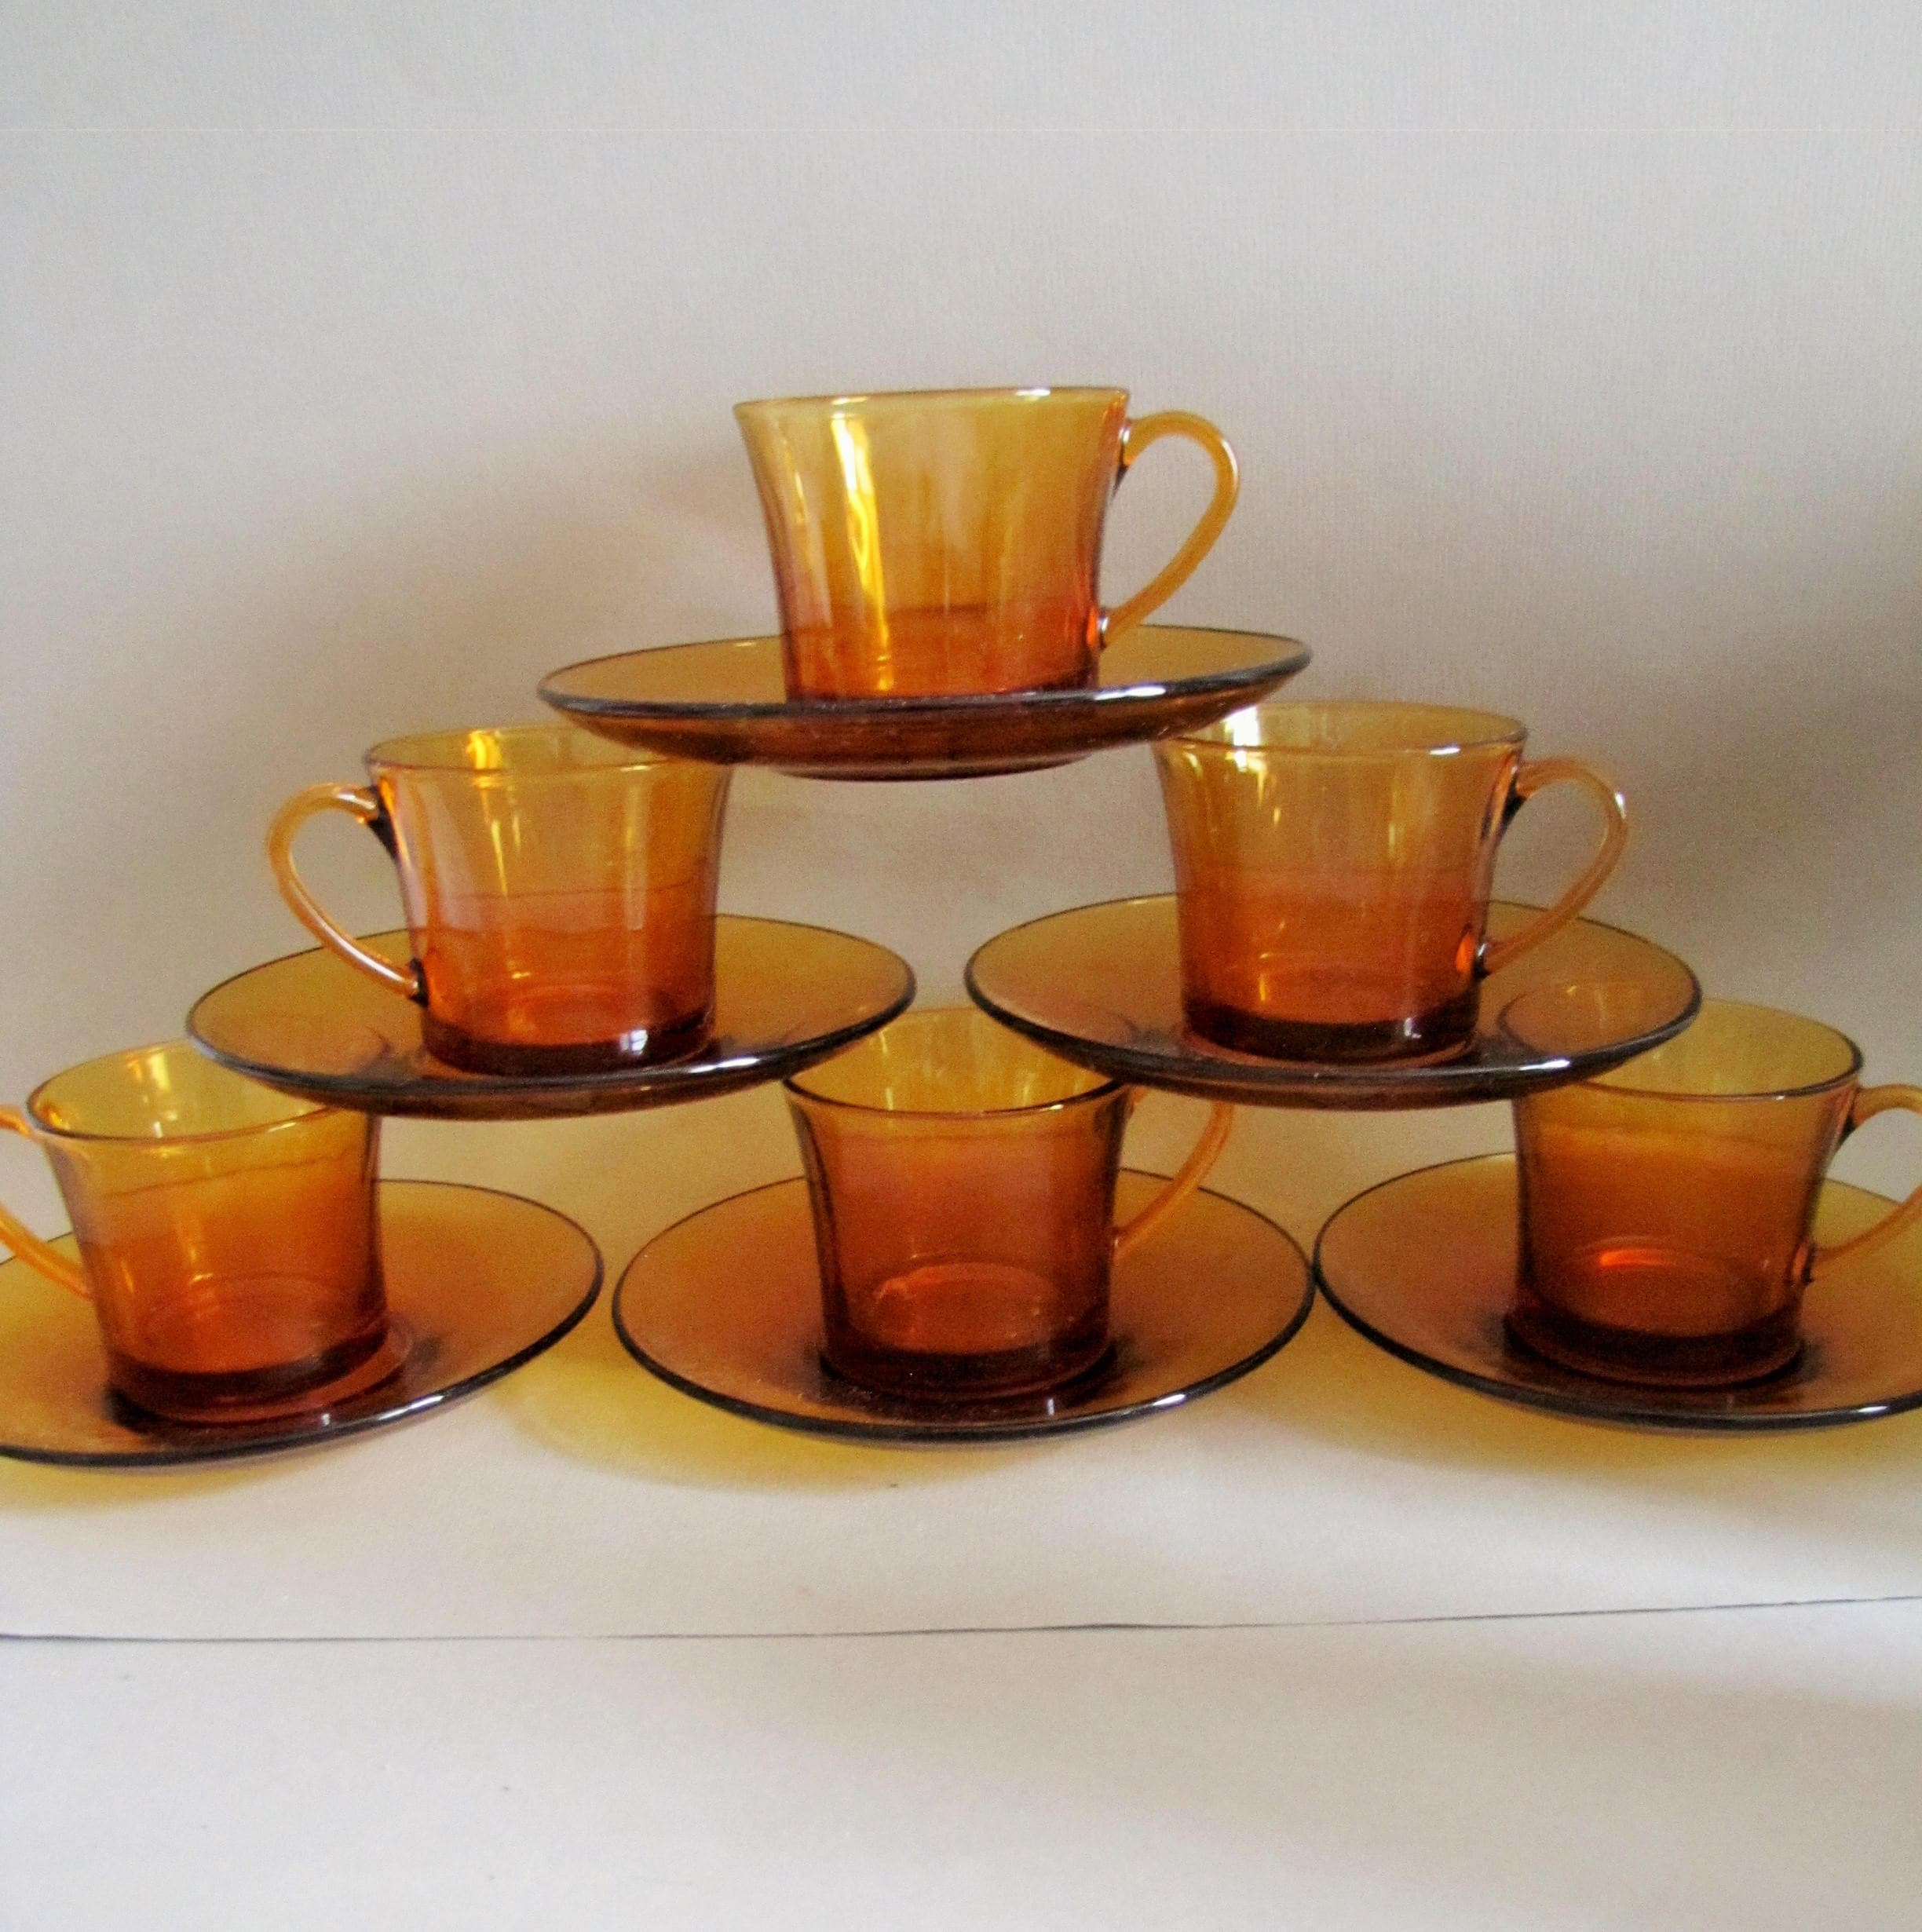 Vintage French Amber Glass Coffee Cups and Saucers Set 6